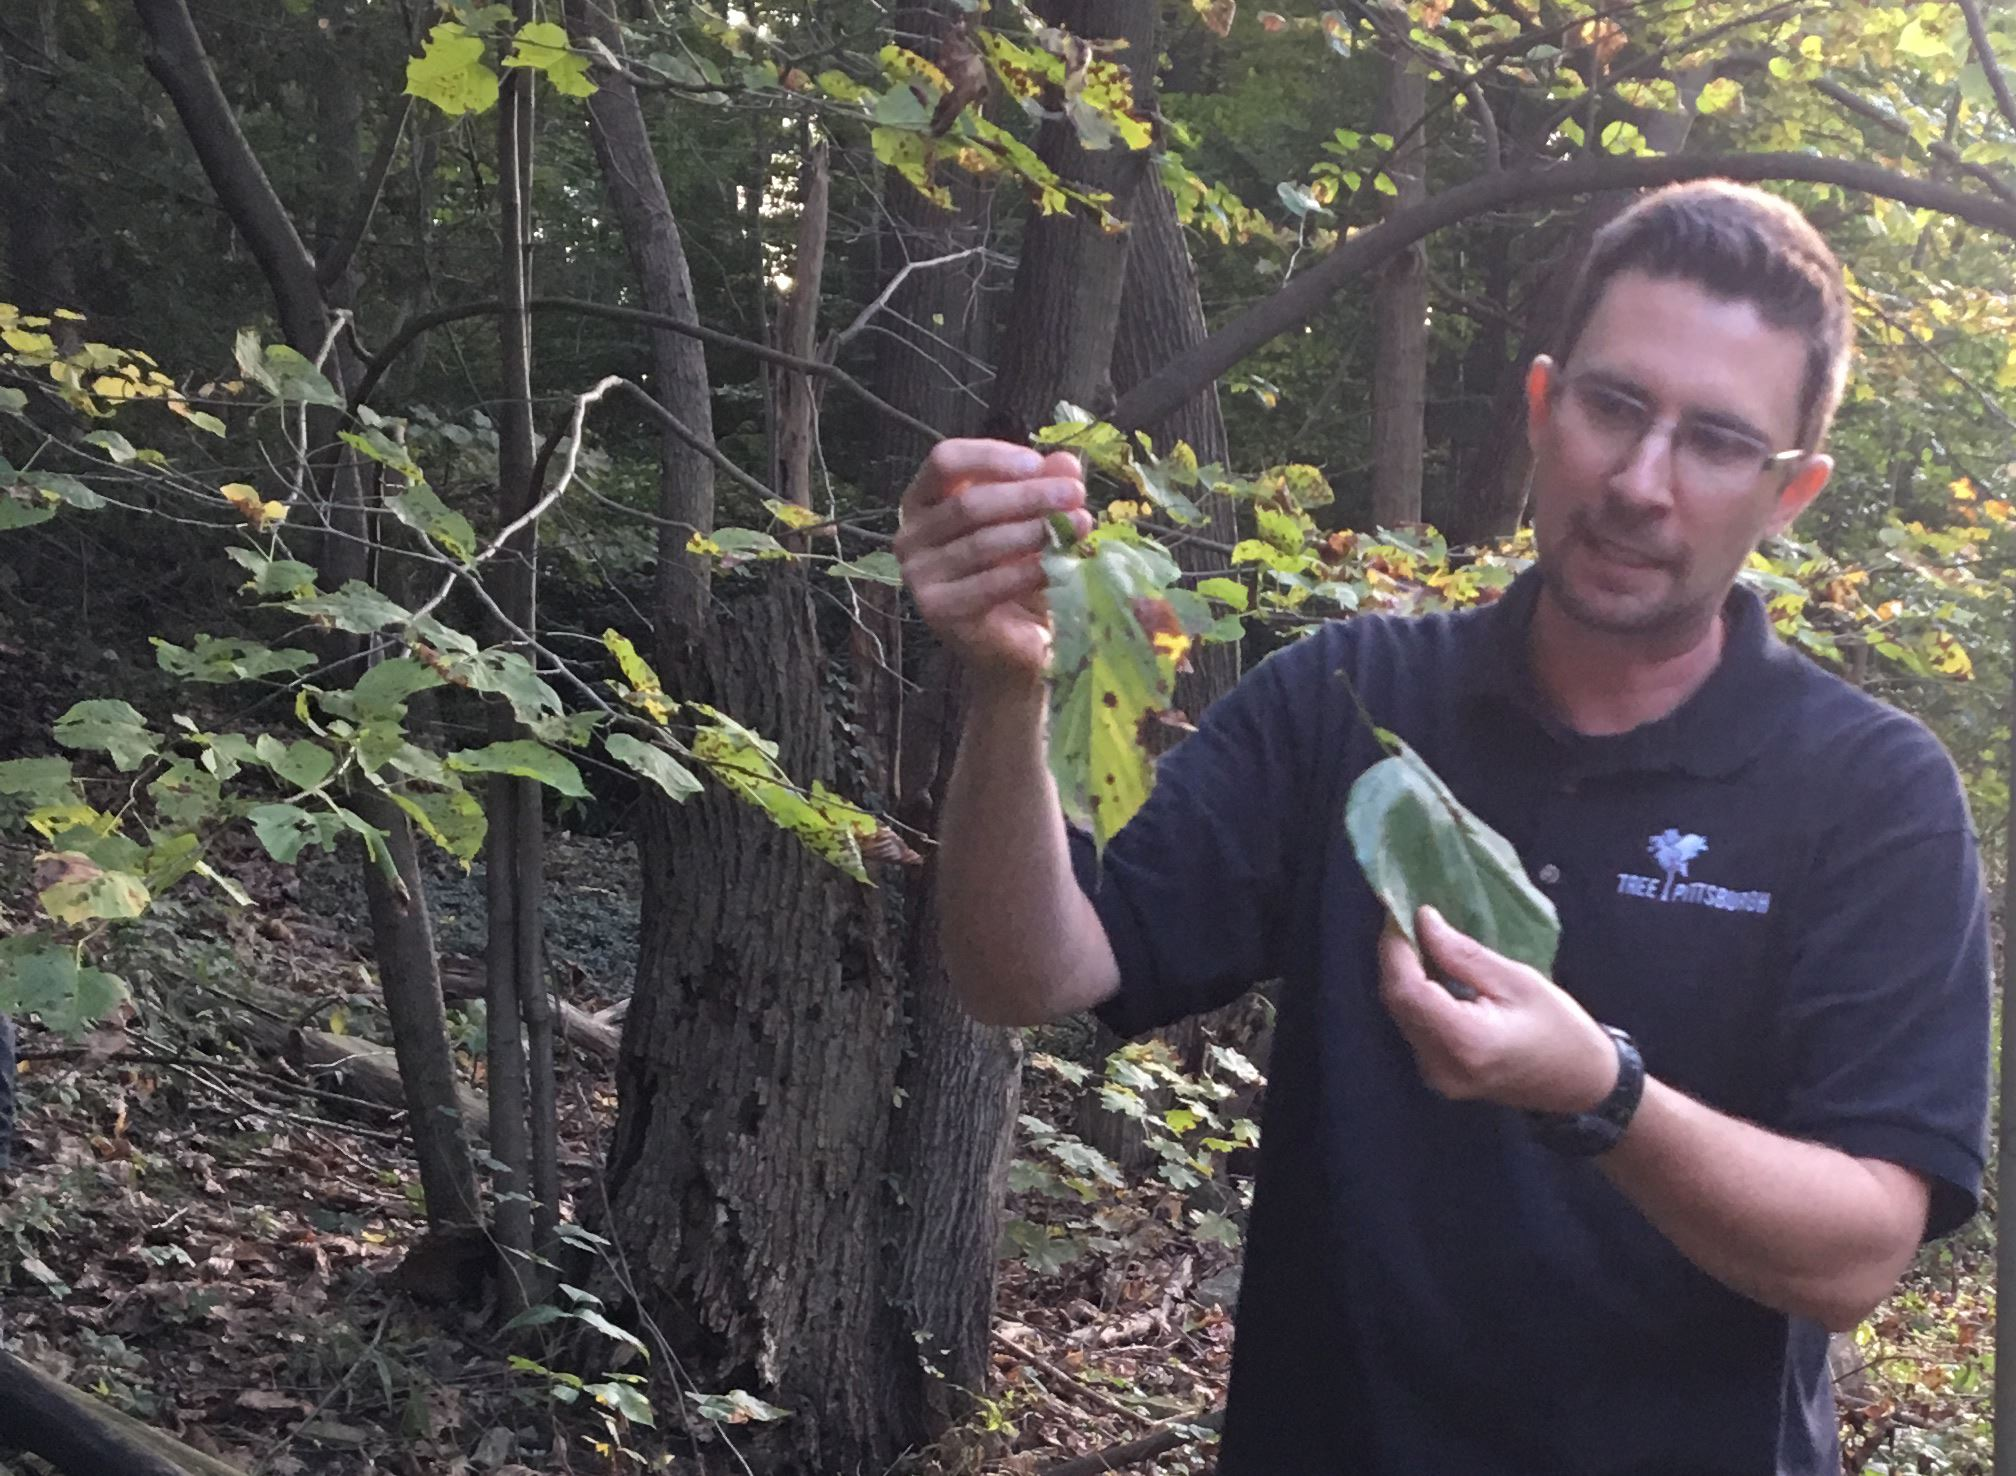 Tree ID Walk in the Park on Oct. 10, 2019